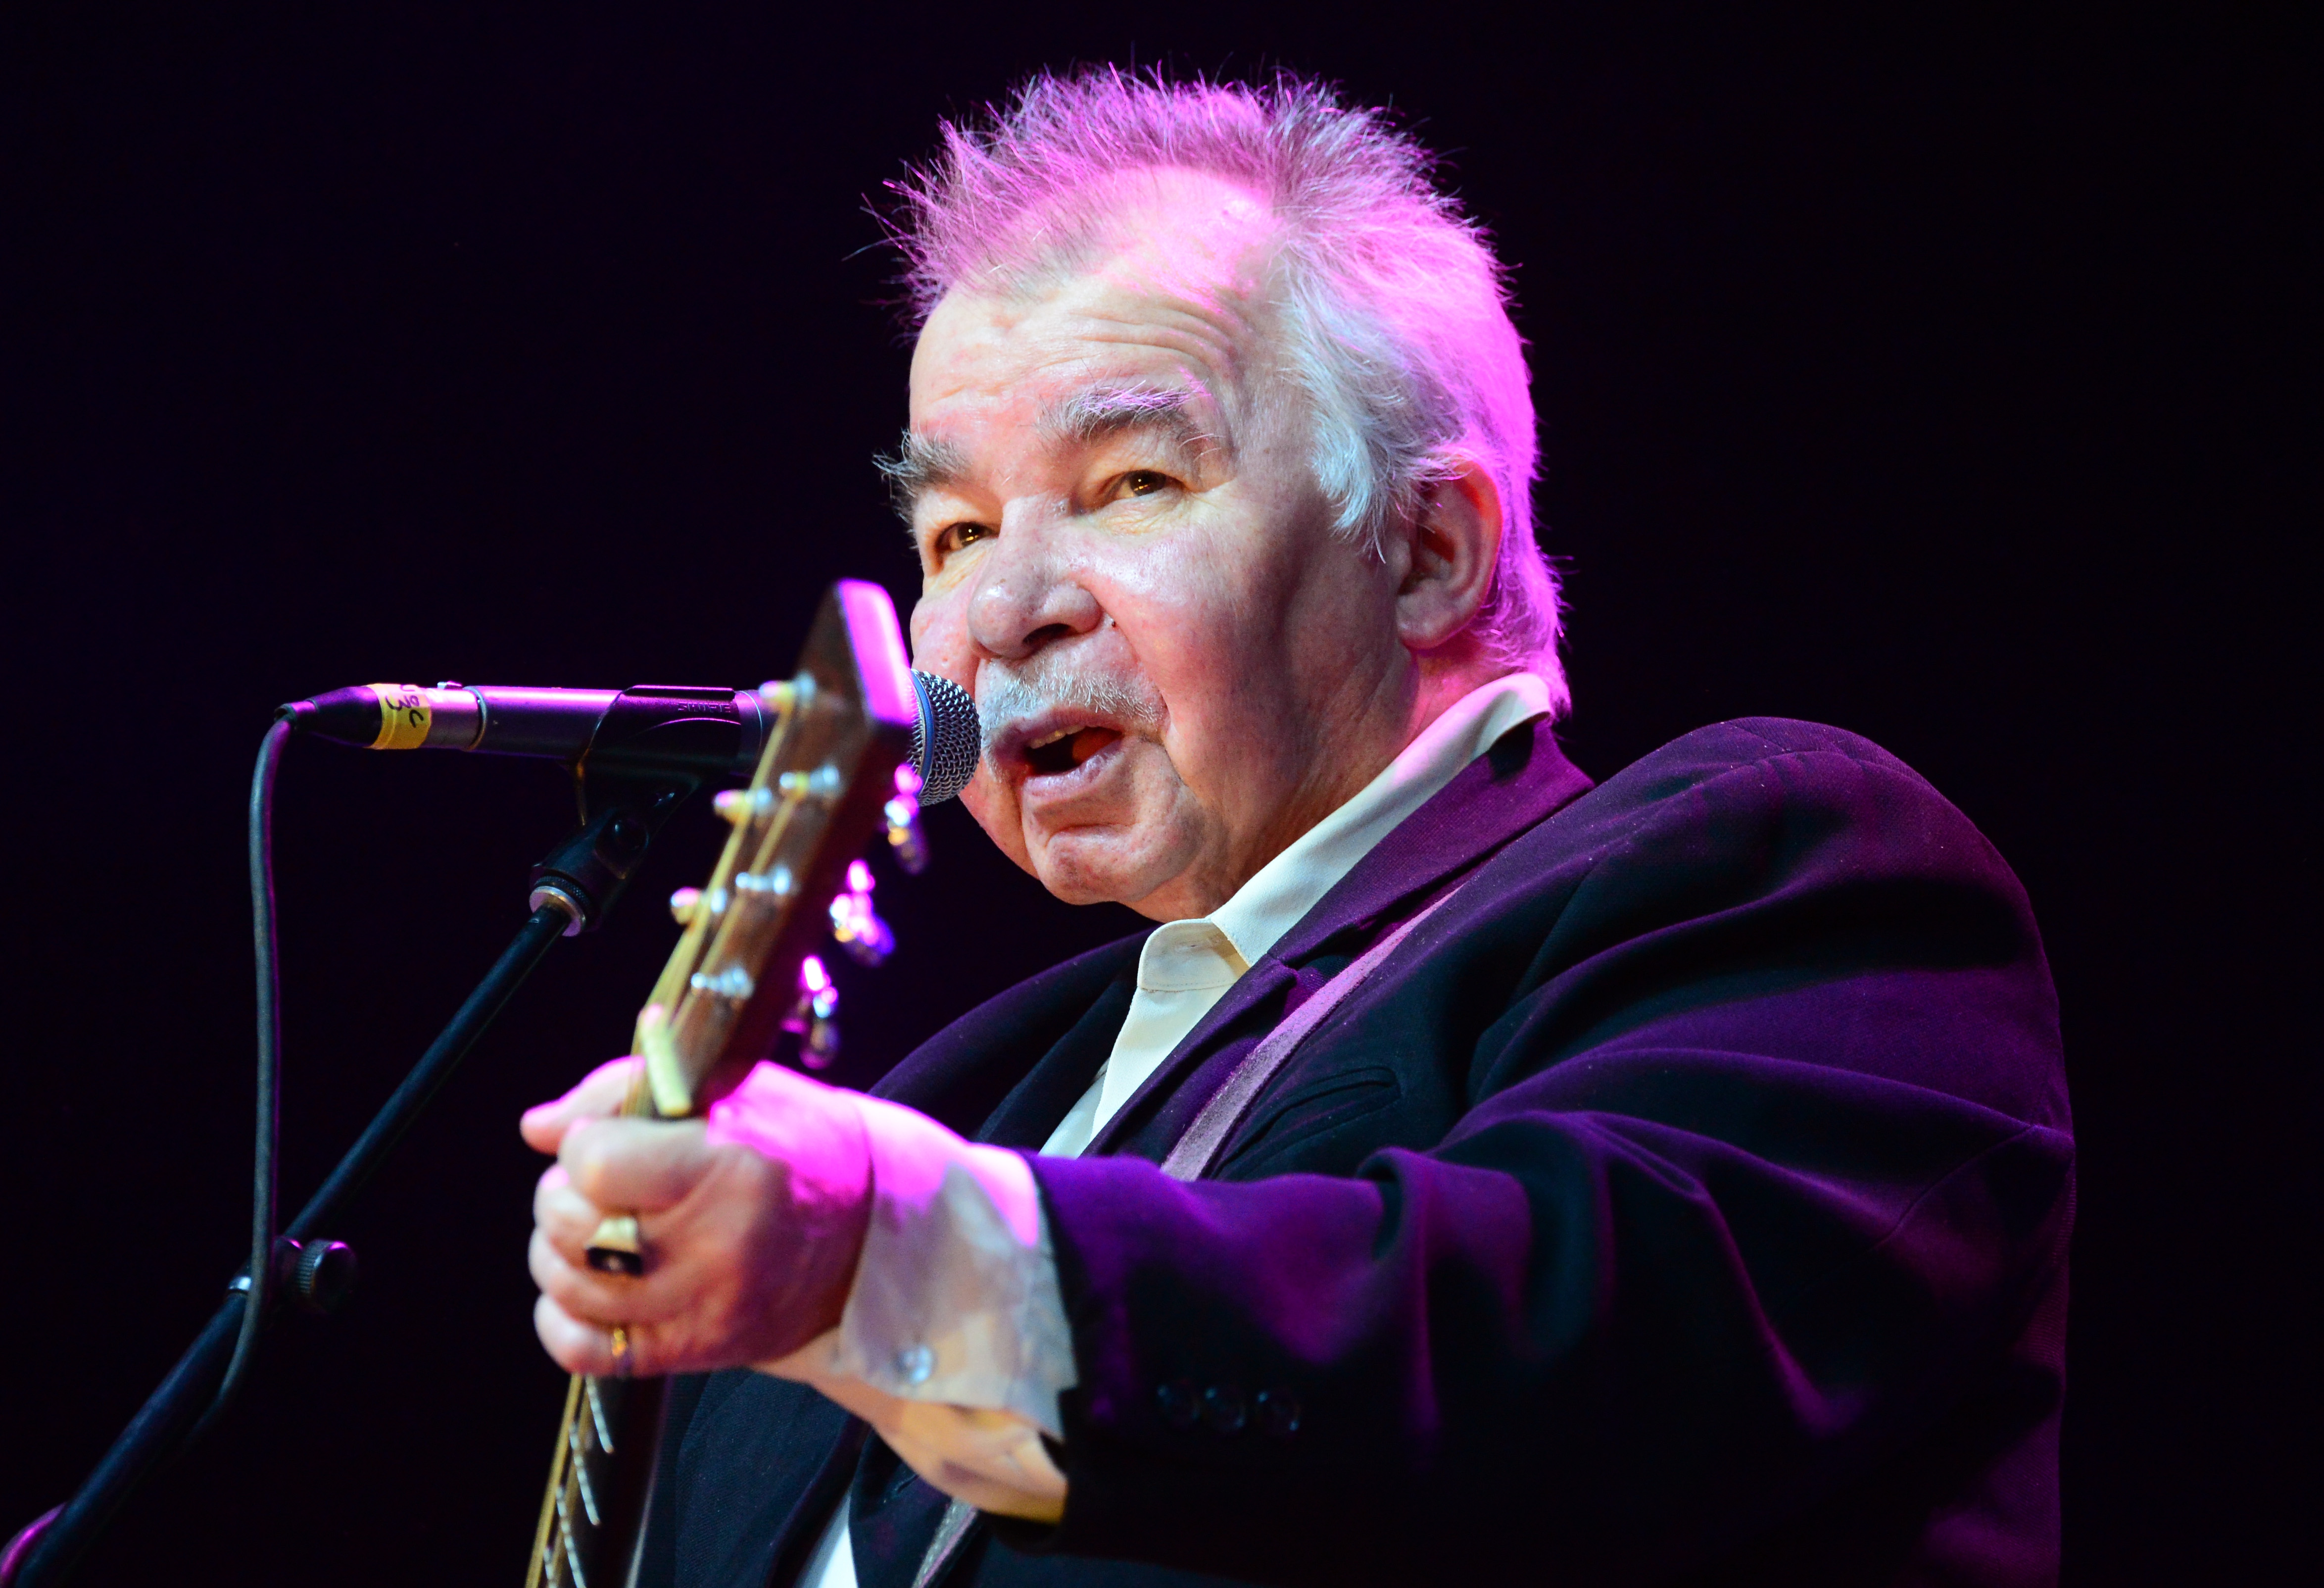 Celebrated Singer Songwriter John Prine Has Died At 73 From Covid